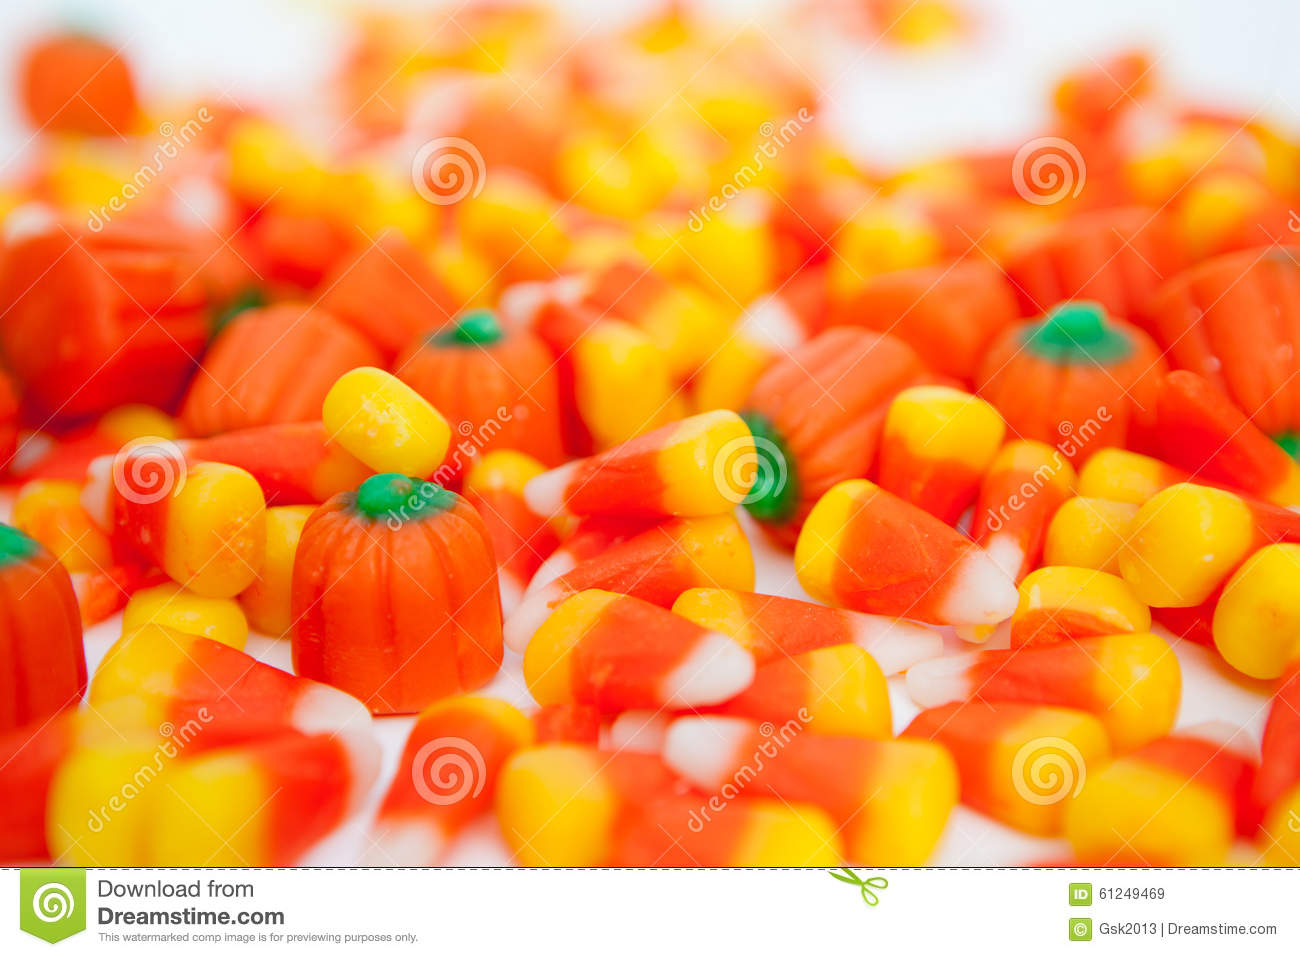 Halloween Candy Pictures Images amp Photos  Photobucket